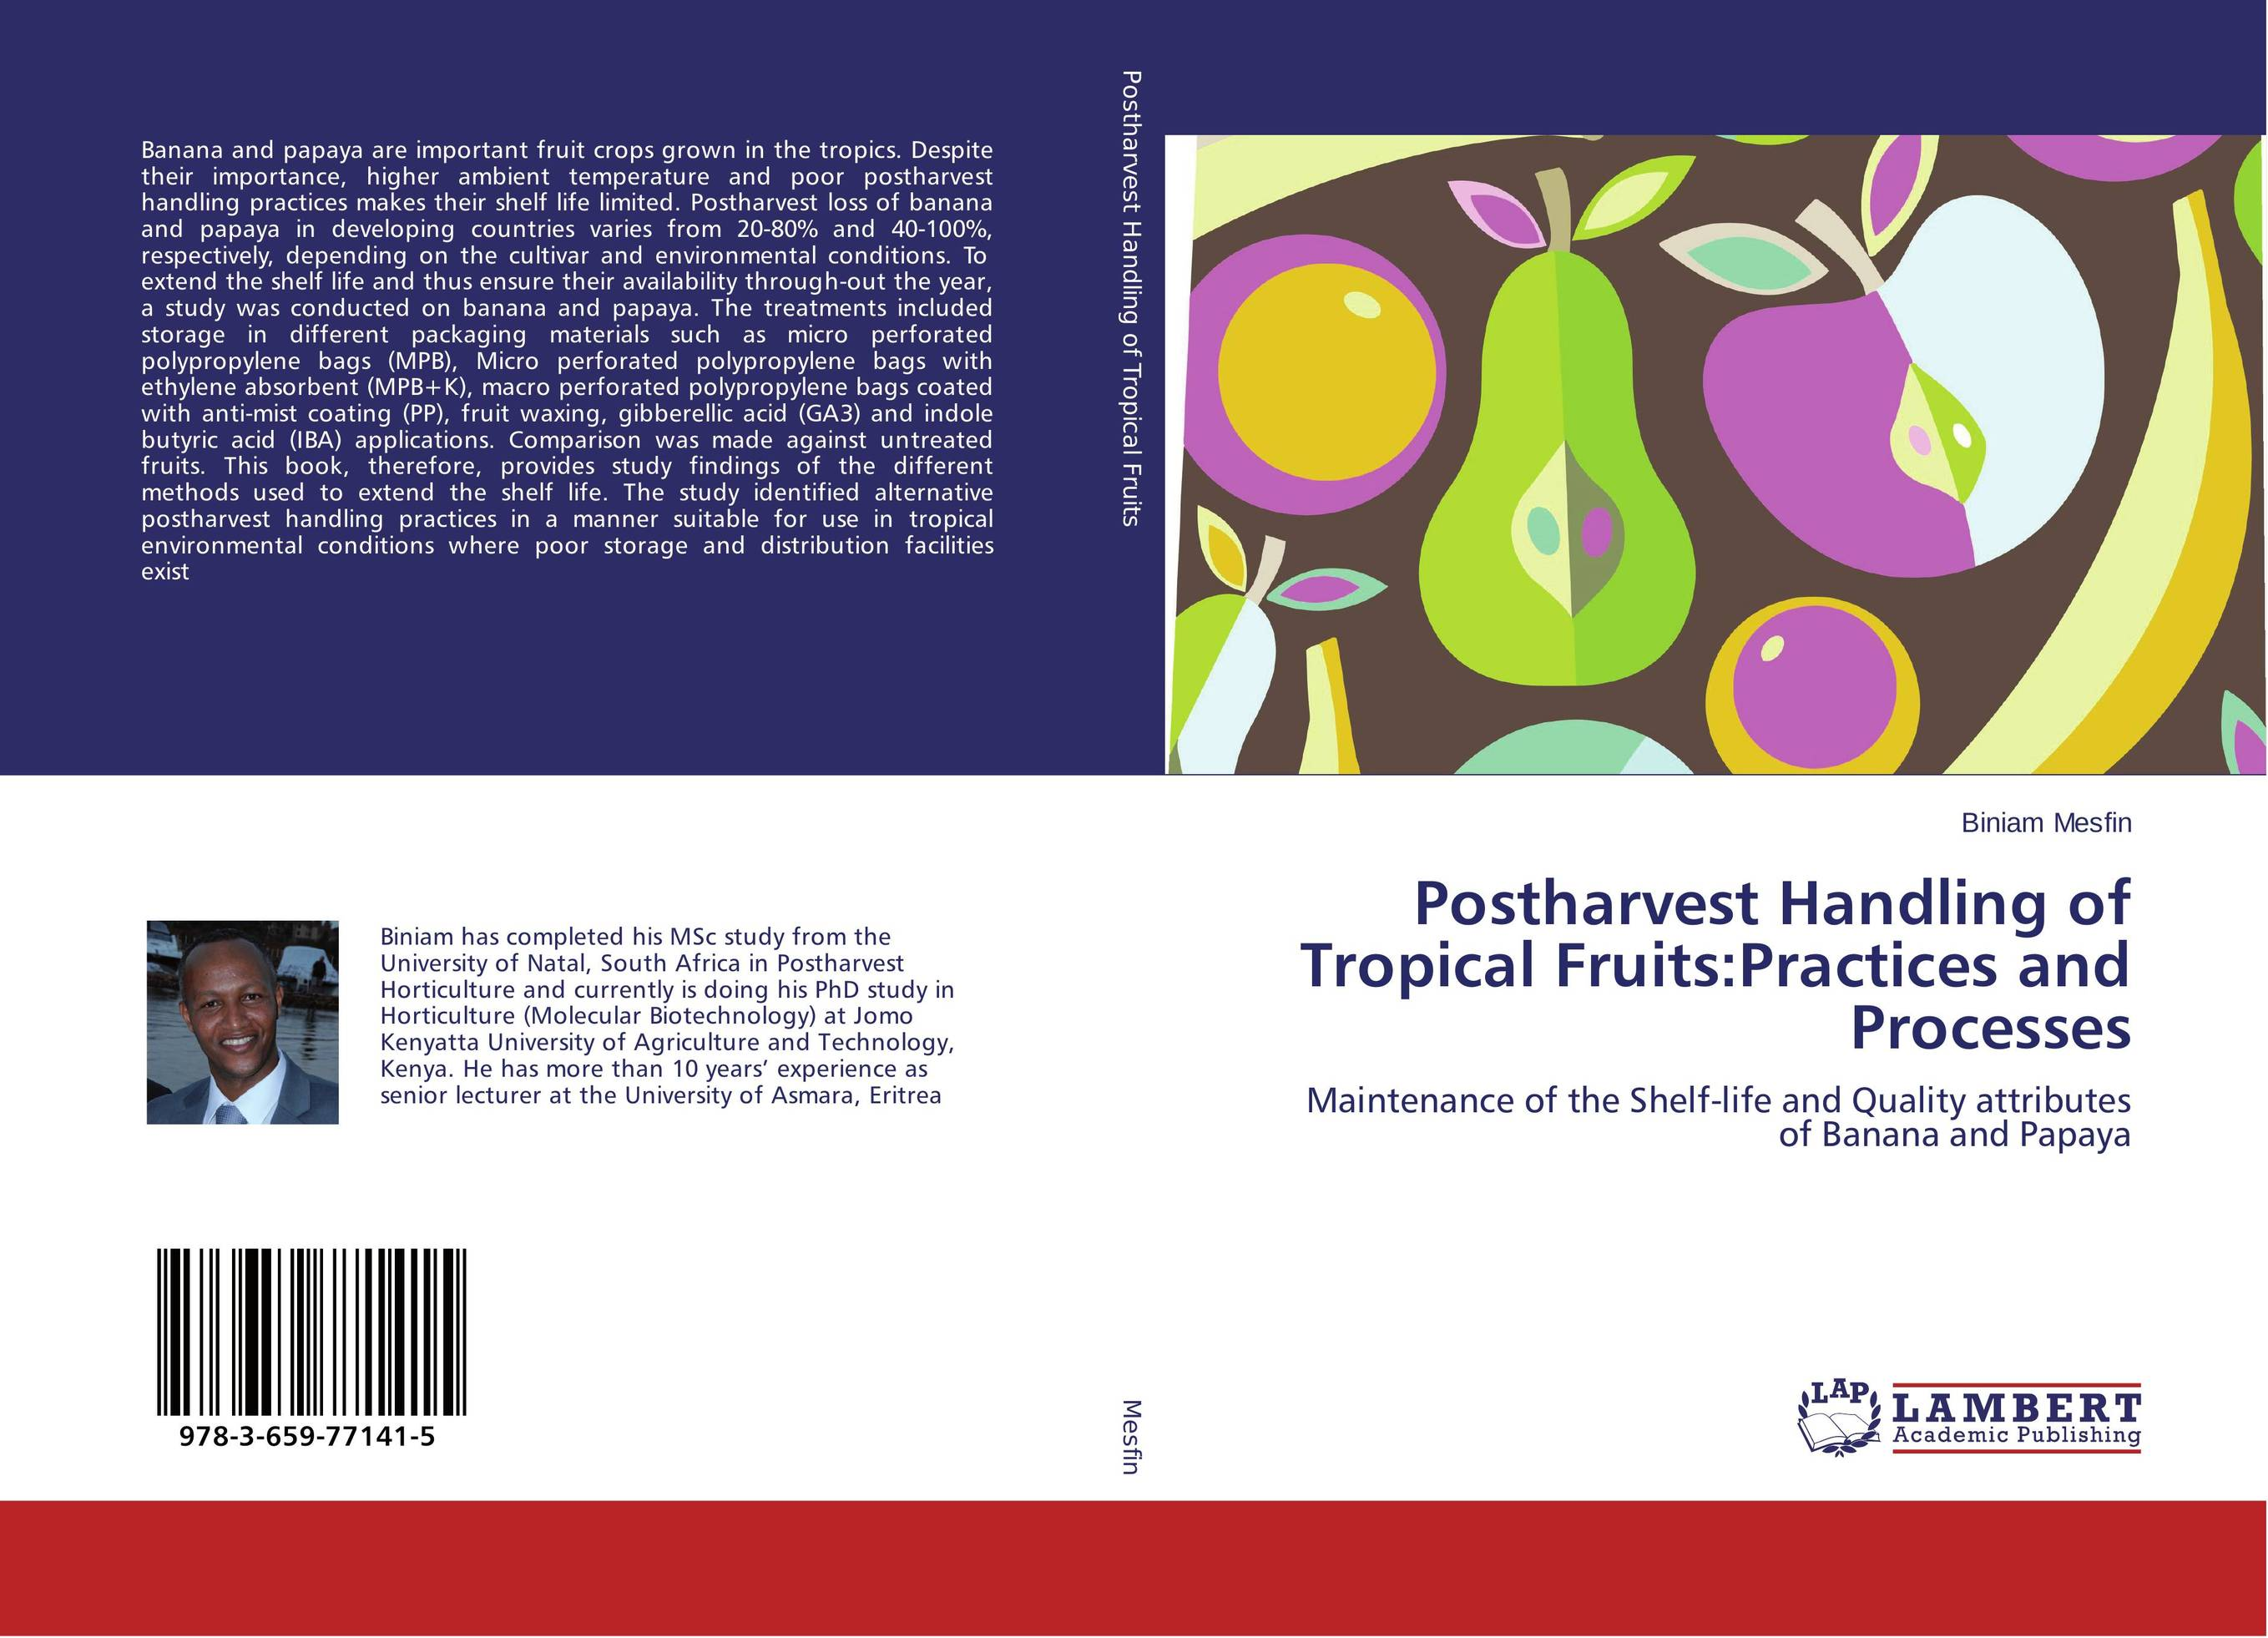 Postharvest Handling of Tropical Fruits:Practices and Processes